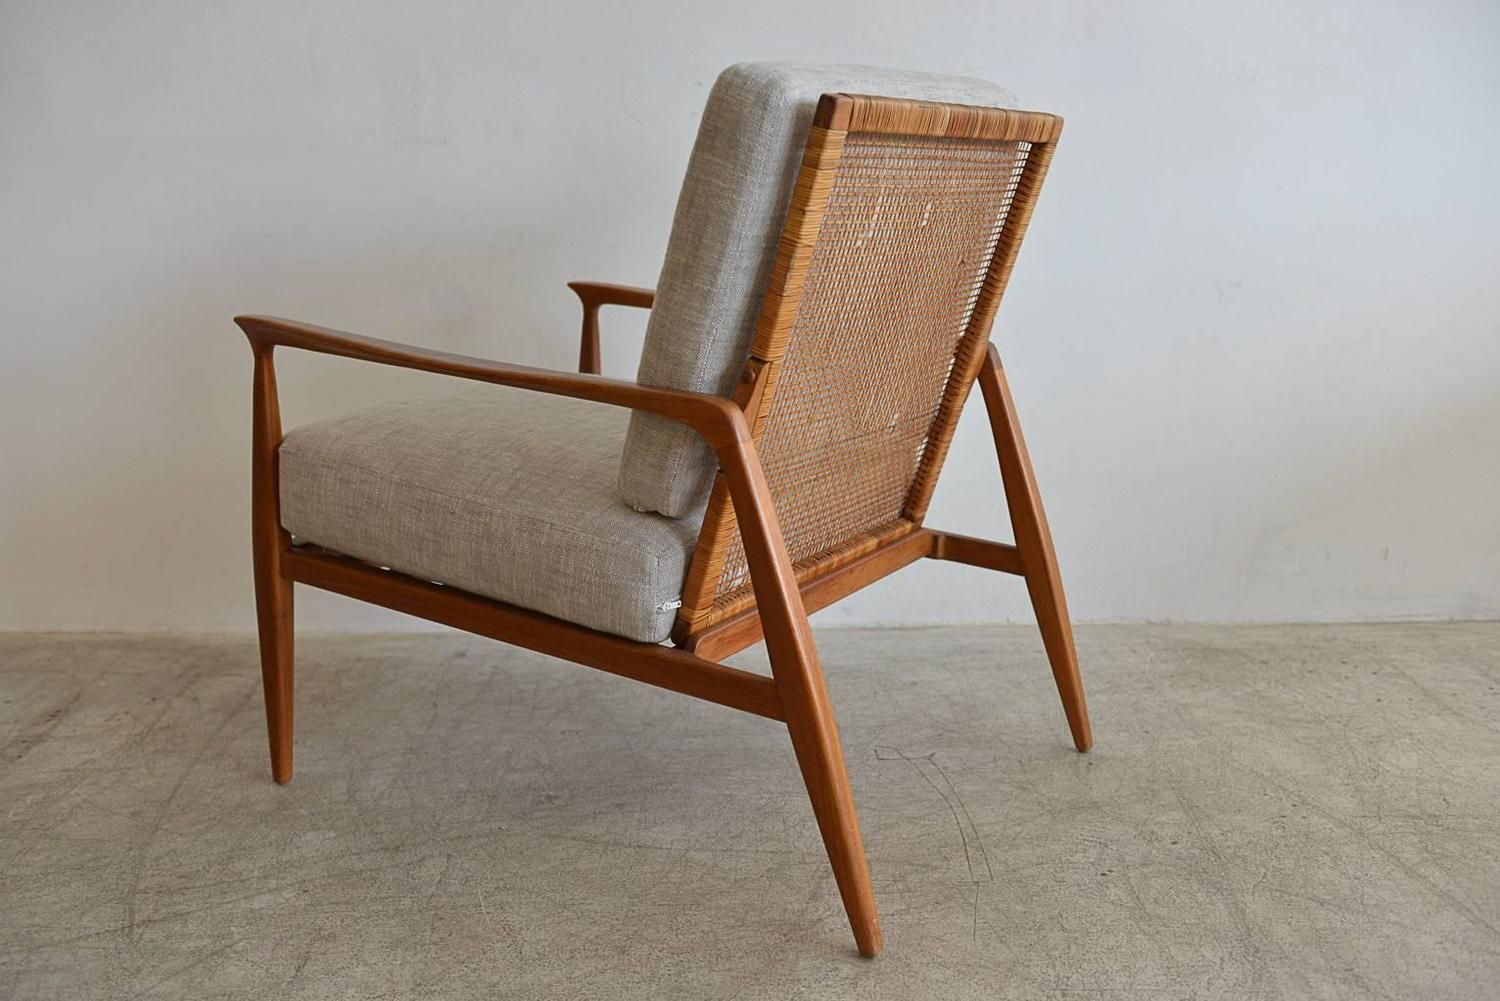 cane back chairs for sale bloom baby high chair danish lounge in the manner of kofod